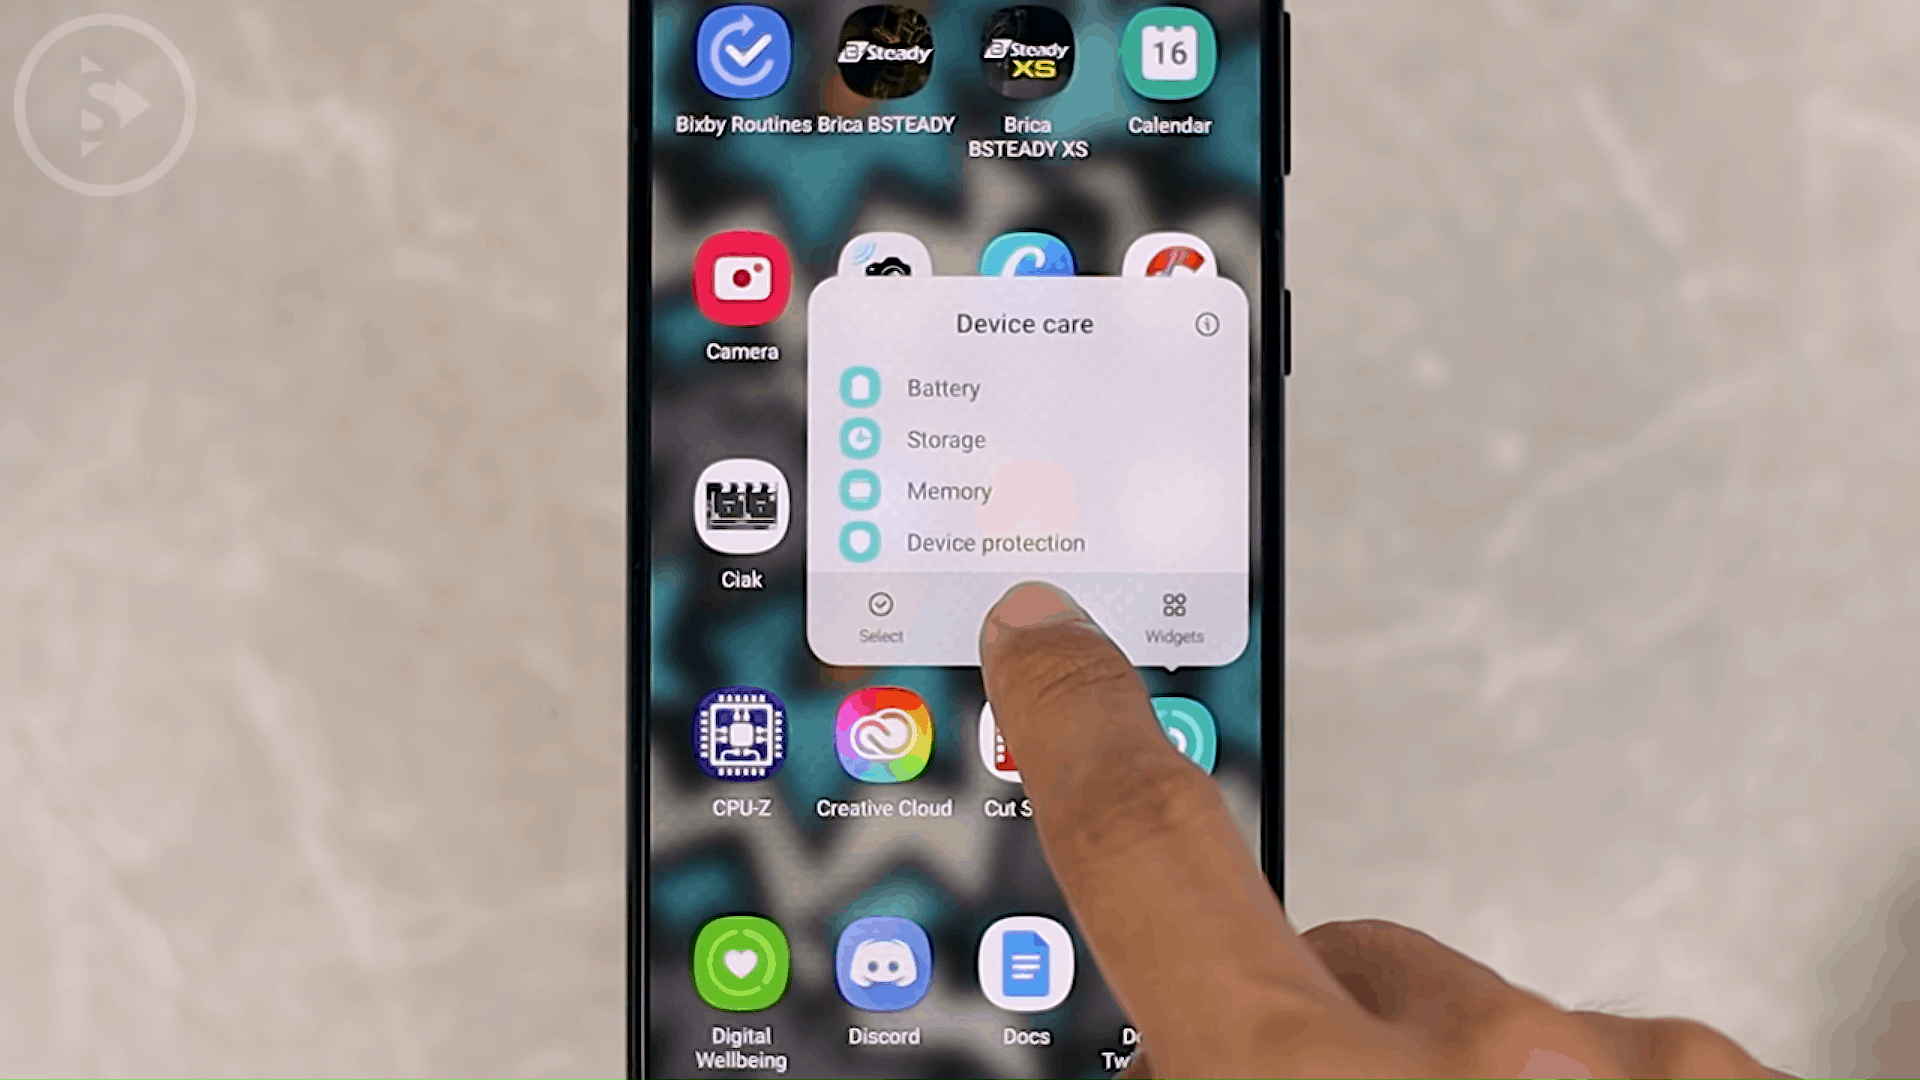 Add Device Care, Digital Wellbeing, and Bixby Routine Shortcuts on Homescreen - 8 New and Cool Samsung Features in One UI 3.0 and One UI 3.1